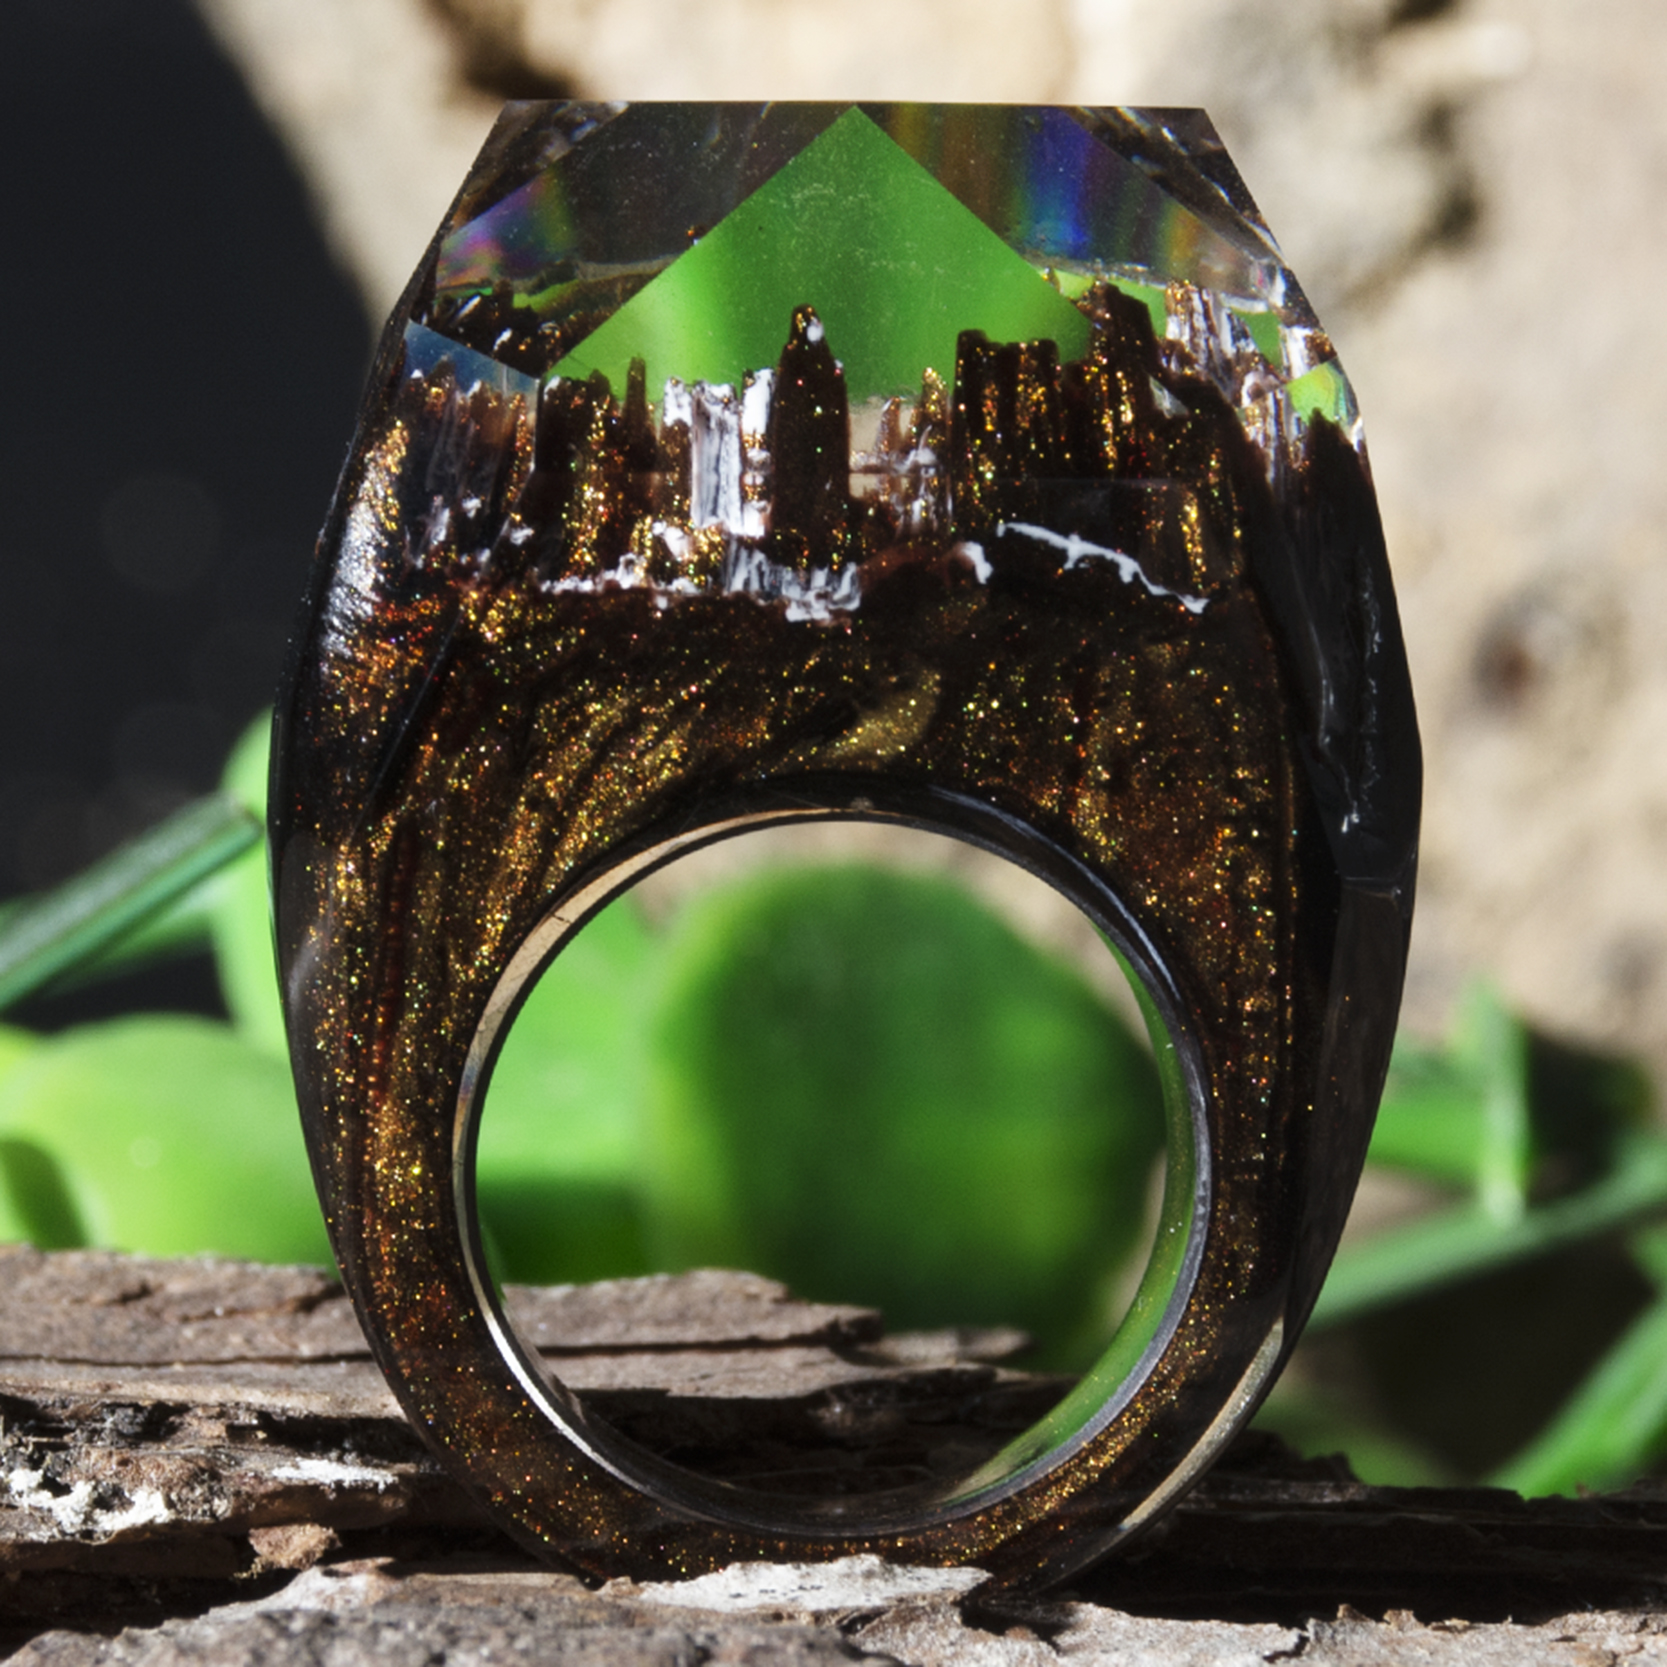 H85525986ec8645e886f9c56f7a68e2f3B - Forest Ring